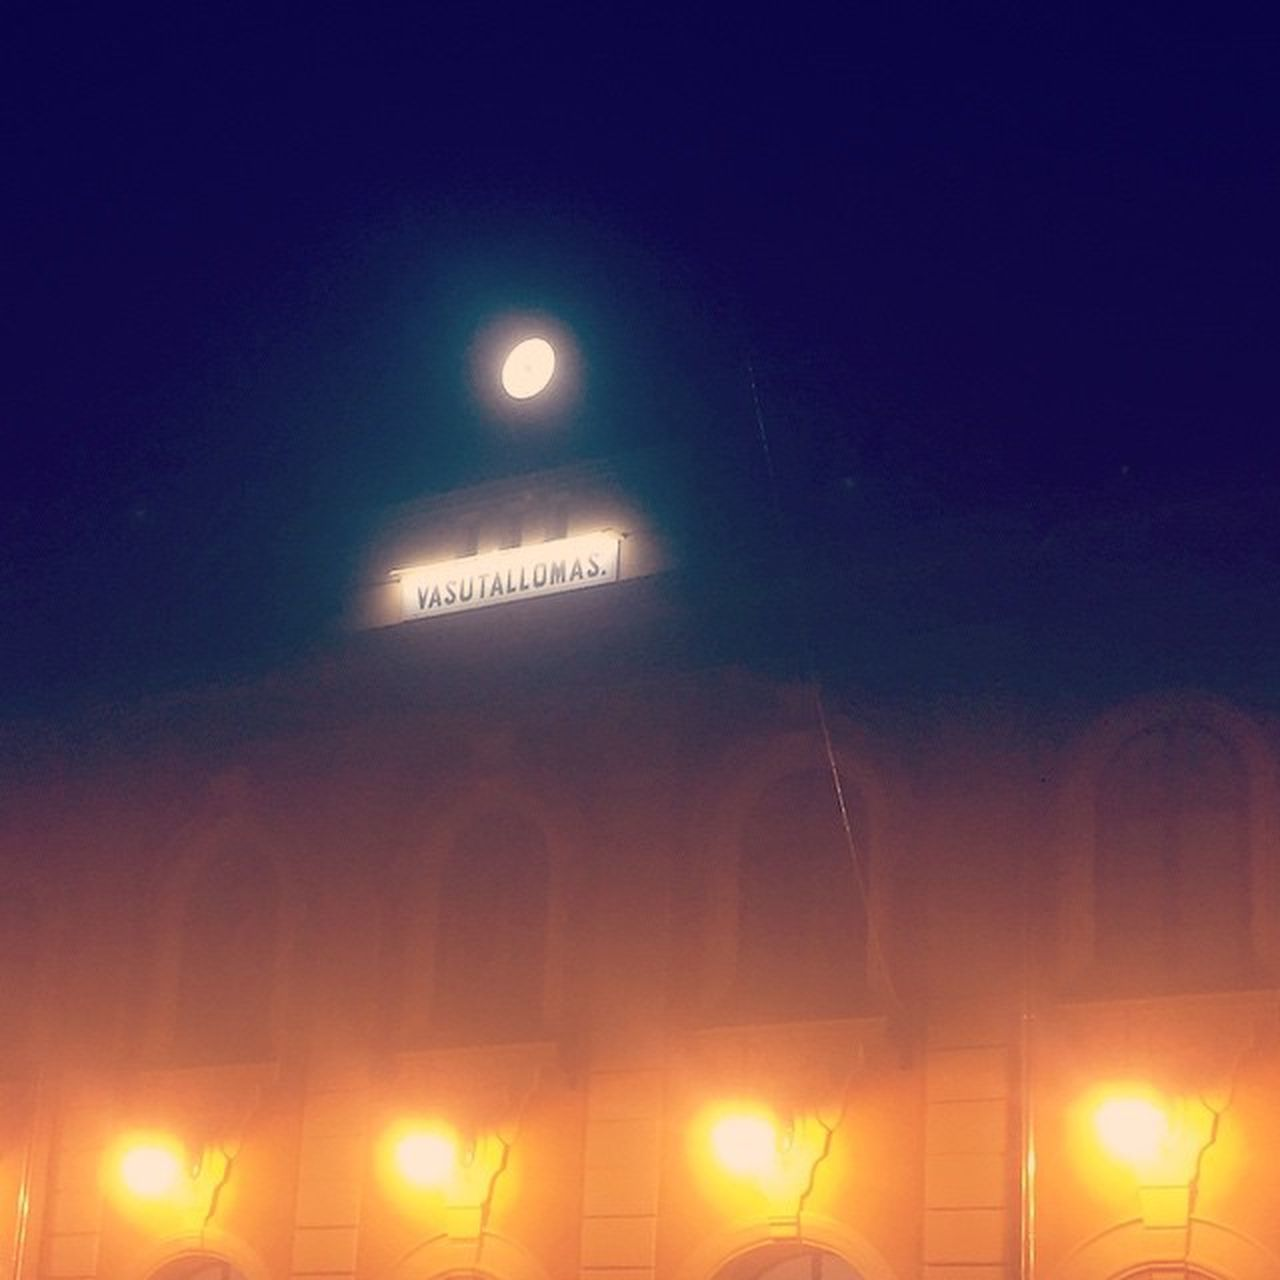 Vac Foggy Railwaystation Night